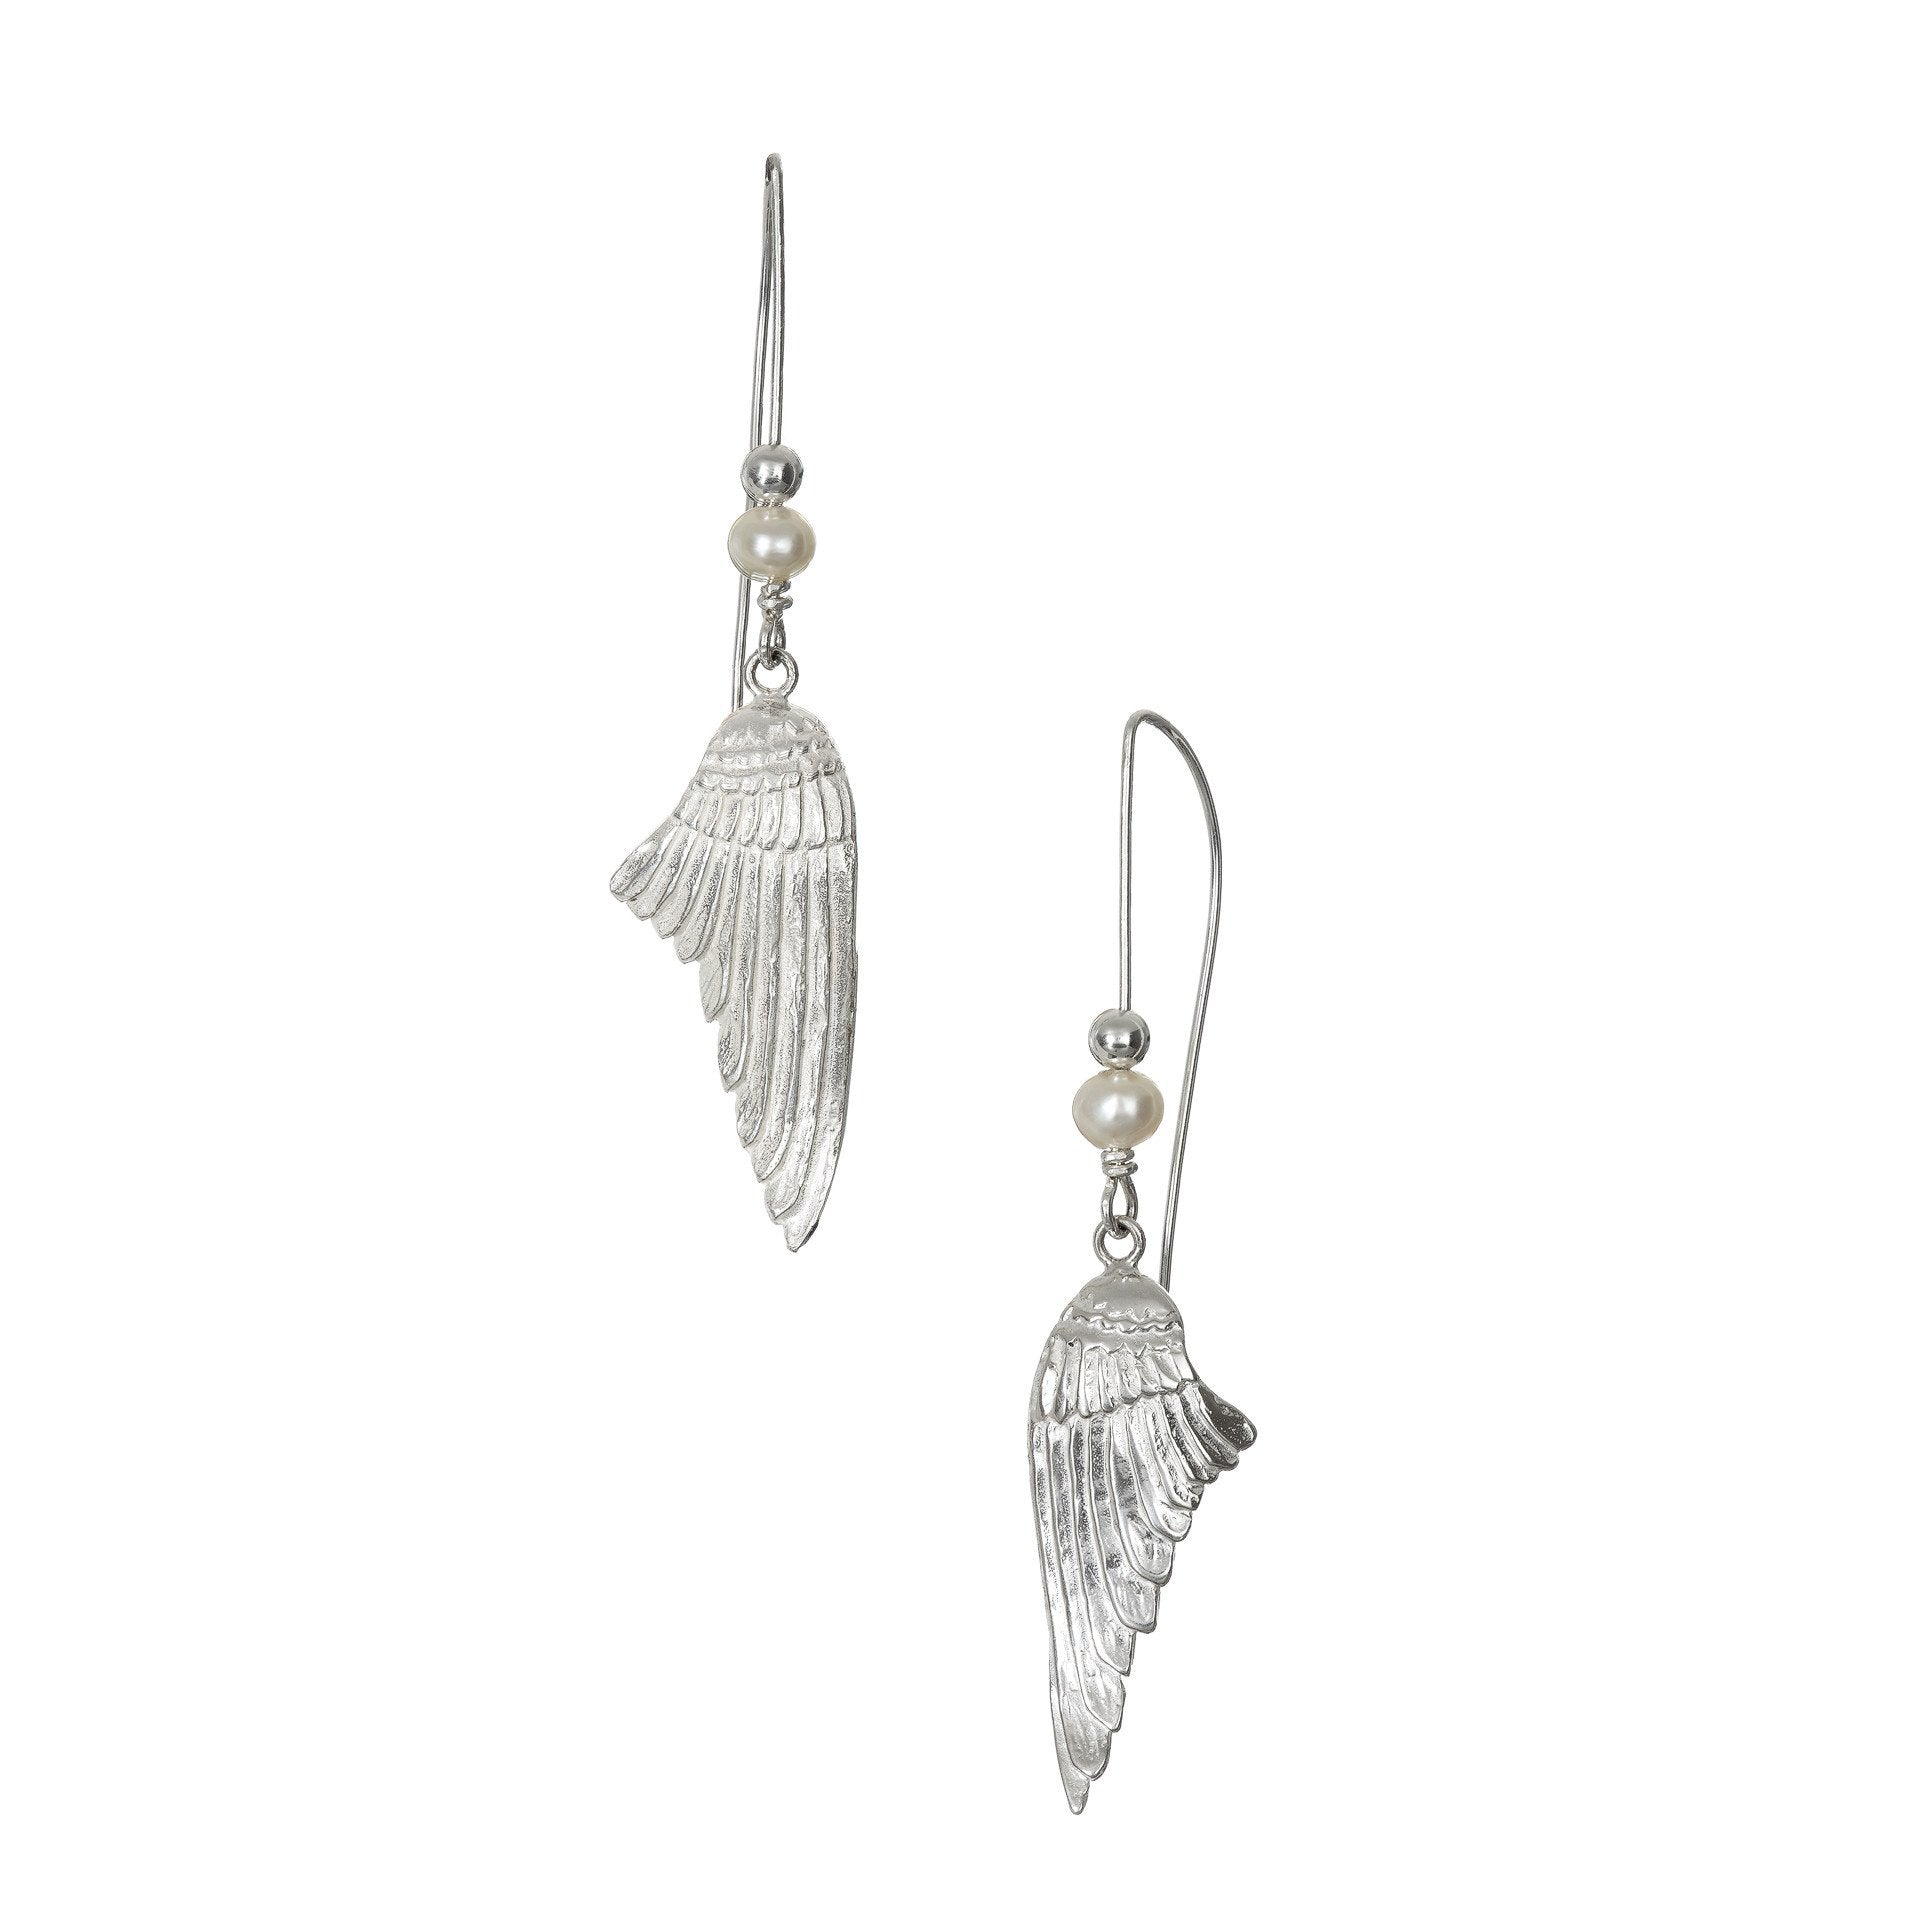 These sterling silver angel wing drop earrings handcrafted by Elena Brennan Jewellery.